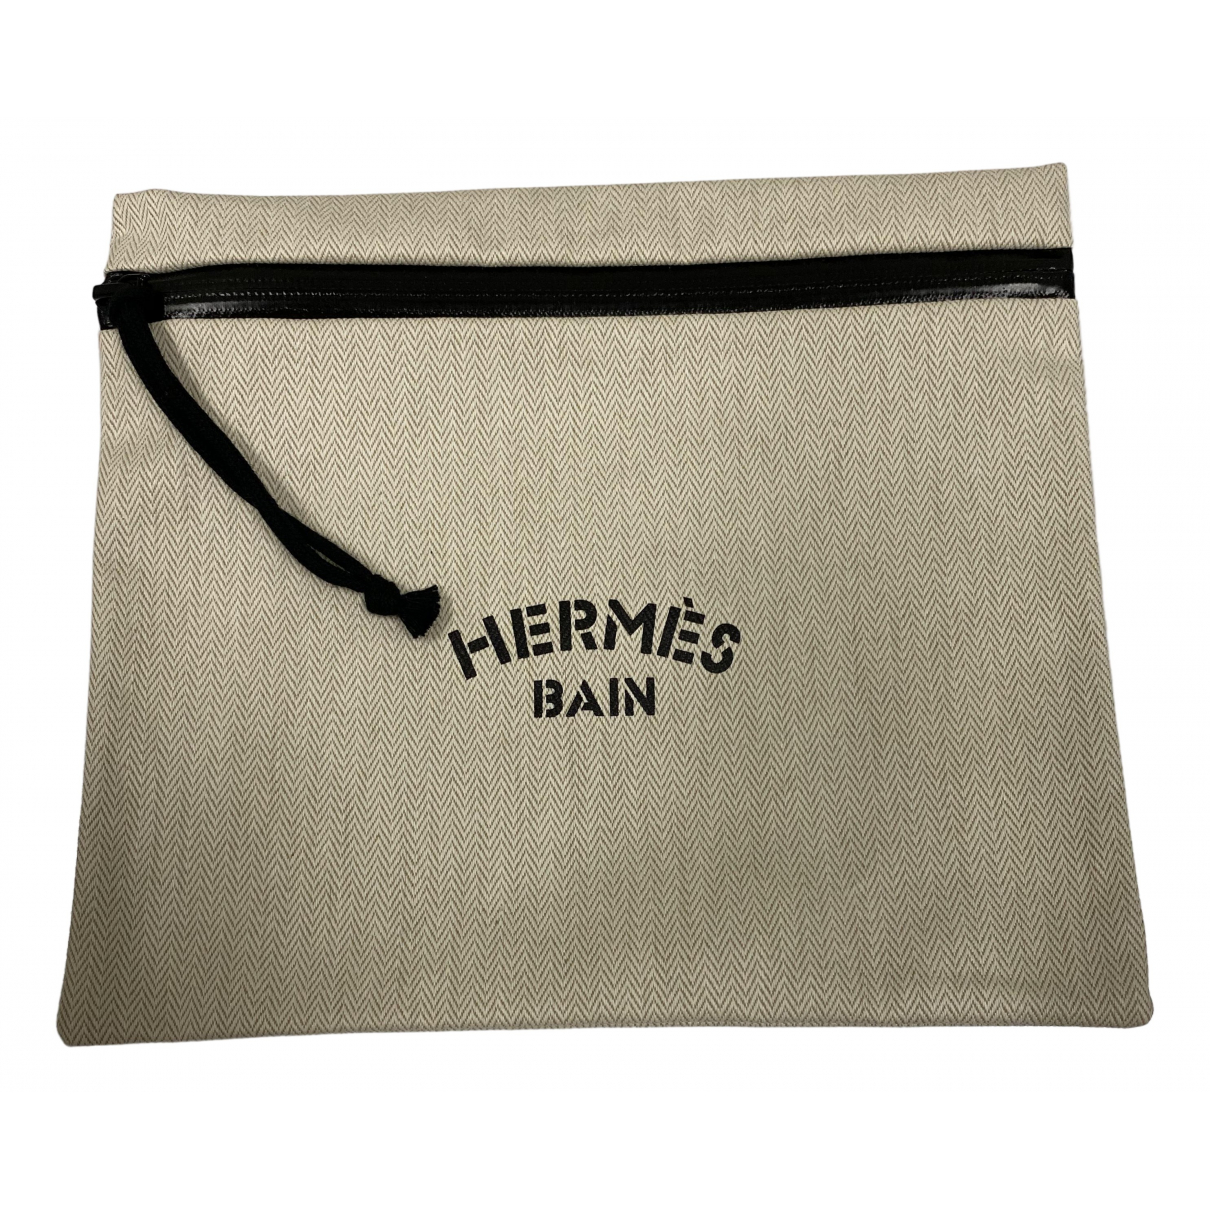 Hermès N Beige Cloth Clutch bag for Women N